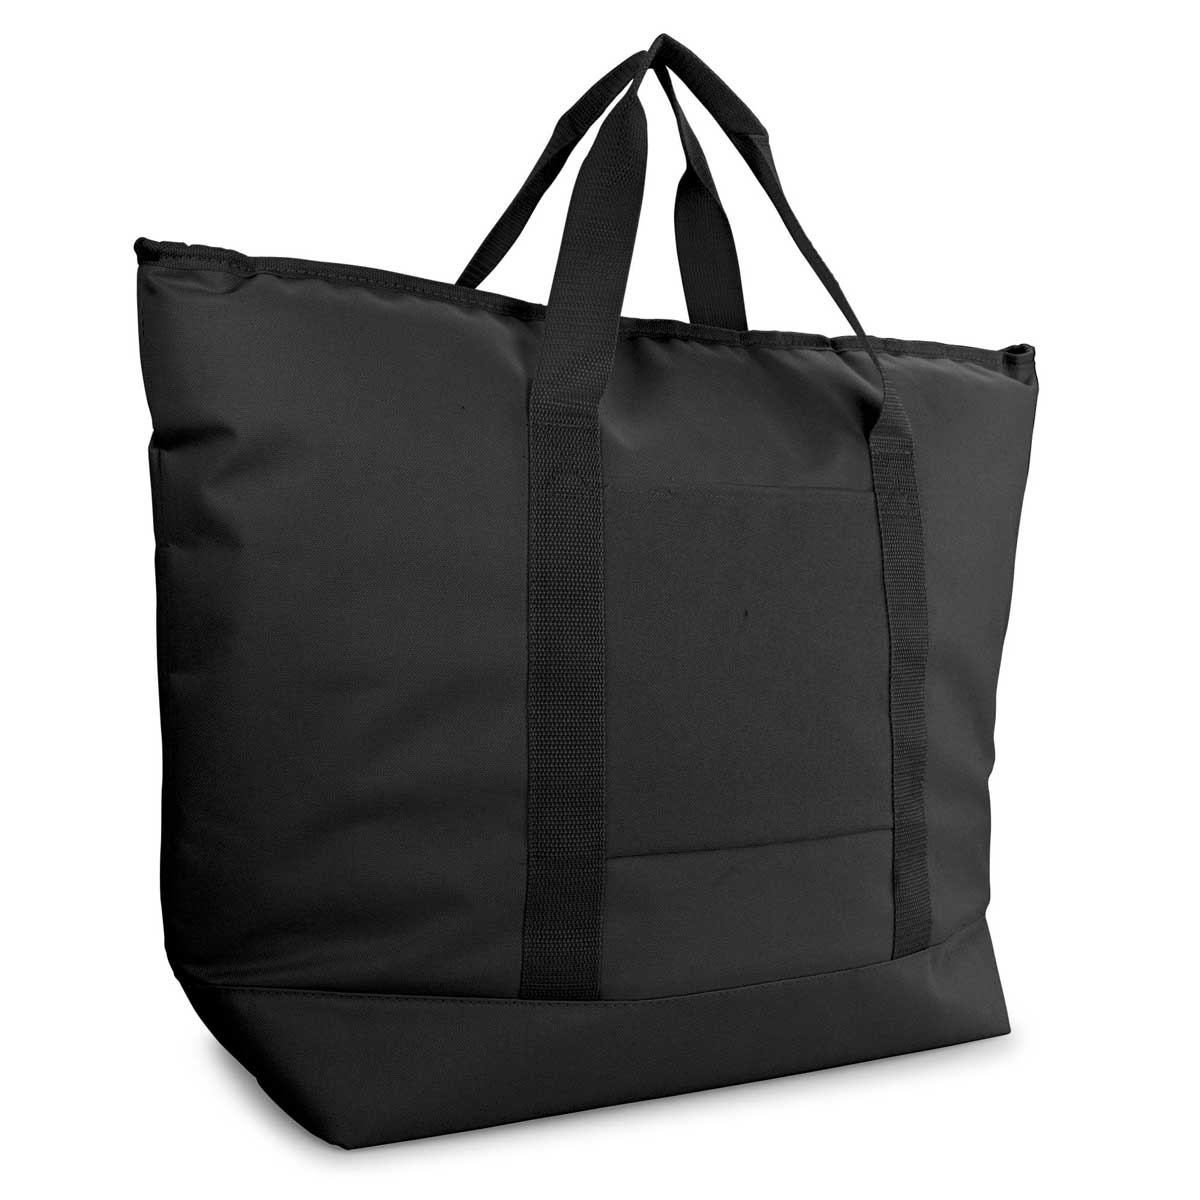 8e2294b5f092 DALIX Large Tote Cooler Bag Insulated Thermal Shopping Tote